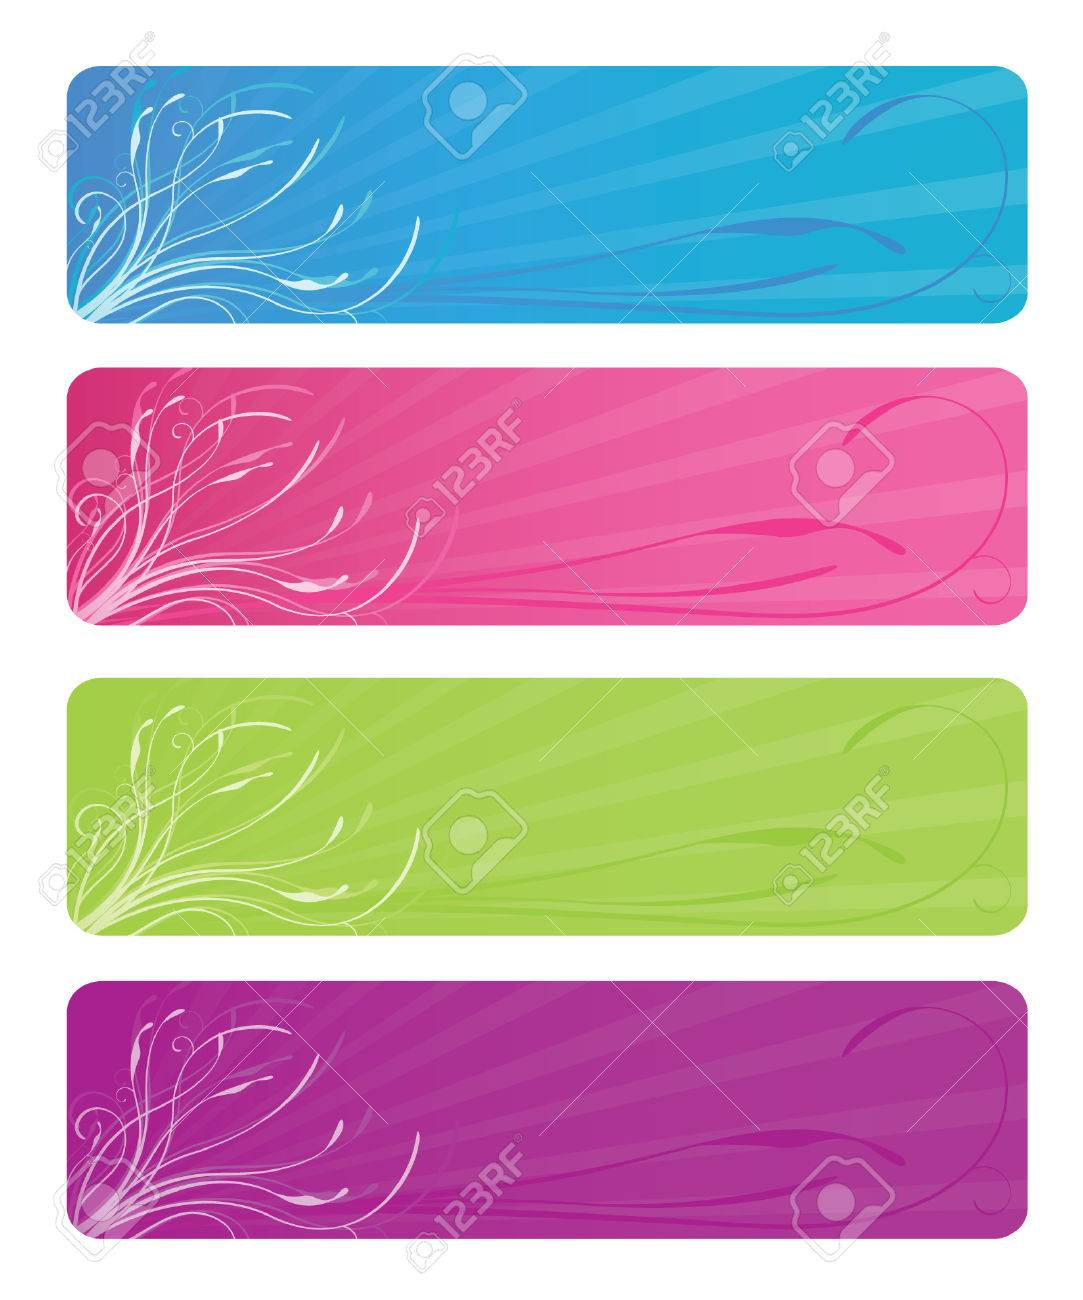 Web colors lime - Four Floral Web Banners In Bright Colors Aqua Hot Pink Lime Green